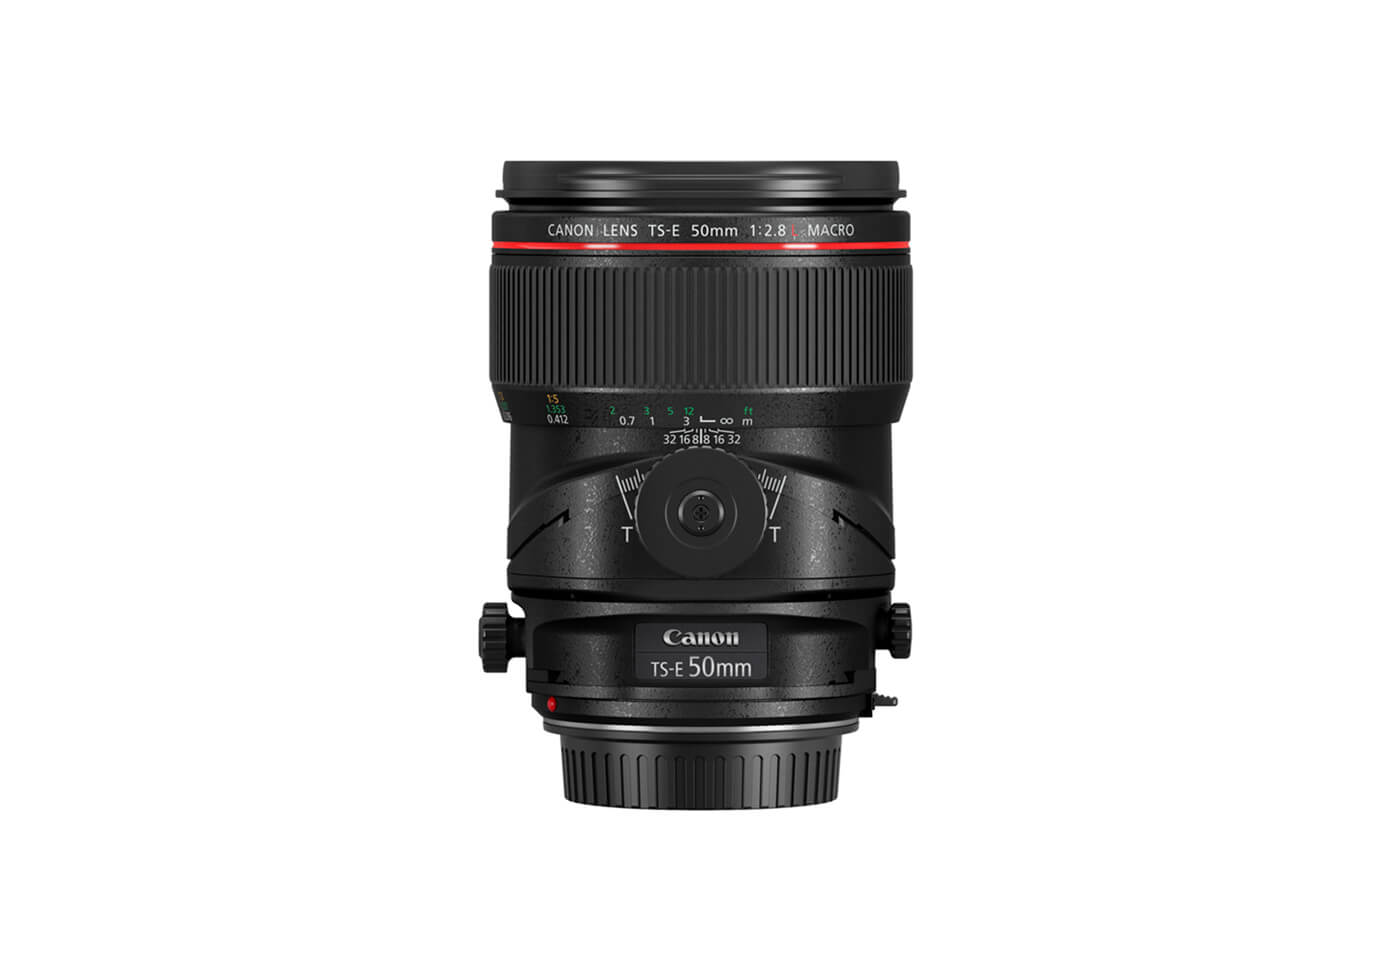 TS-E 50mm f/2.8L Macro Tilt Shift front image